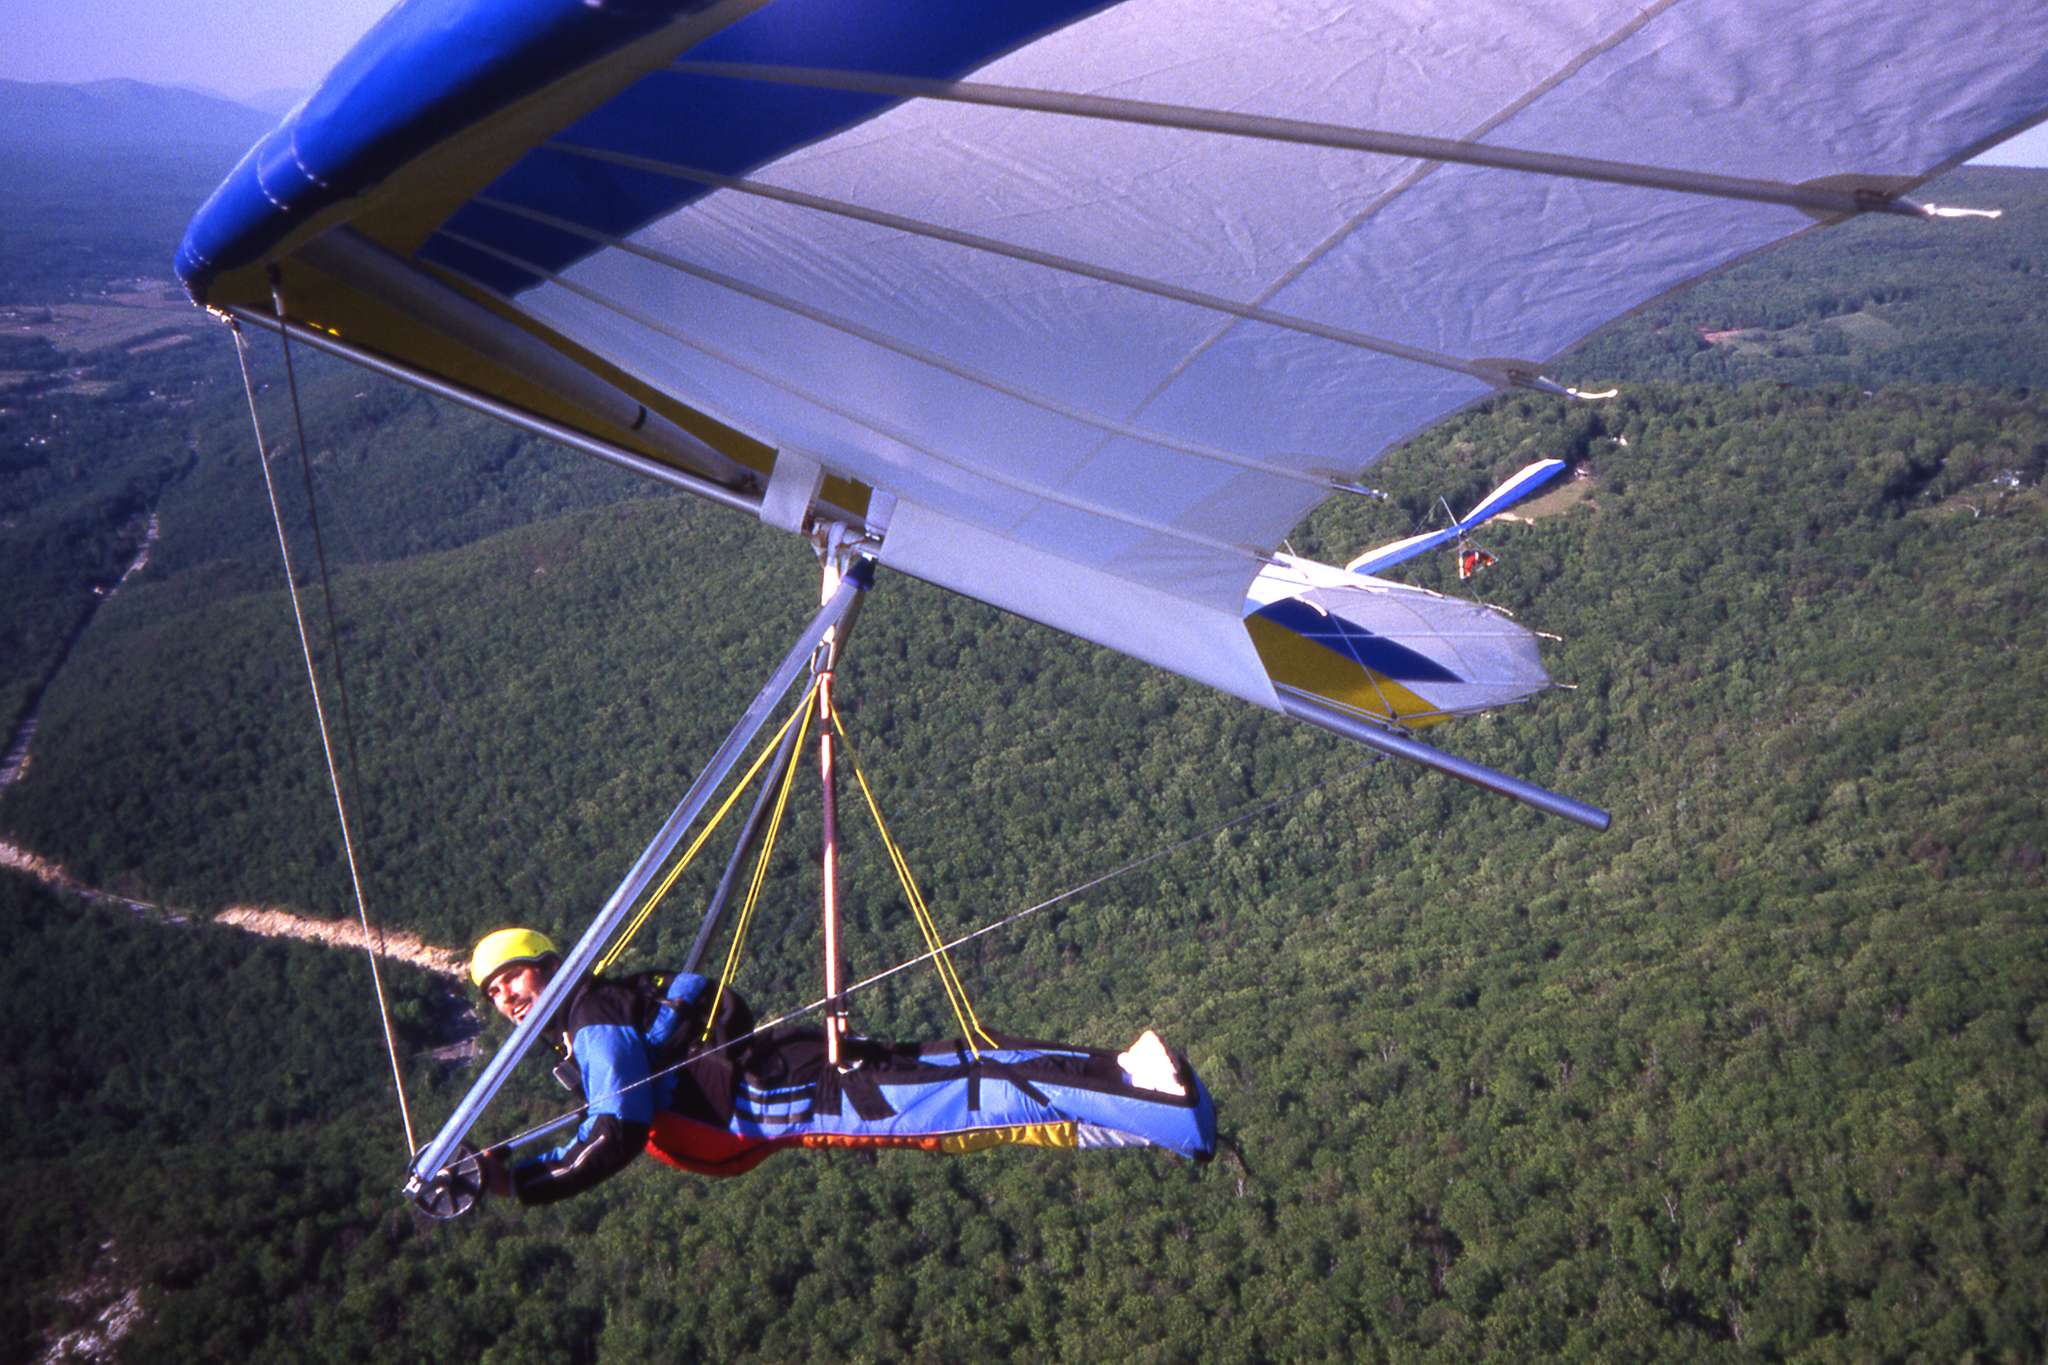 Gliding machine high resolution stock photography and images